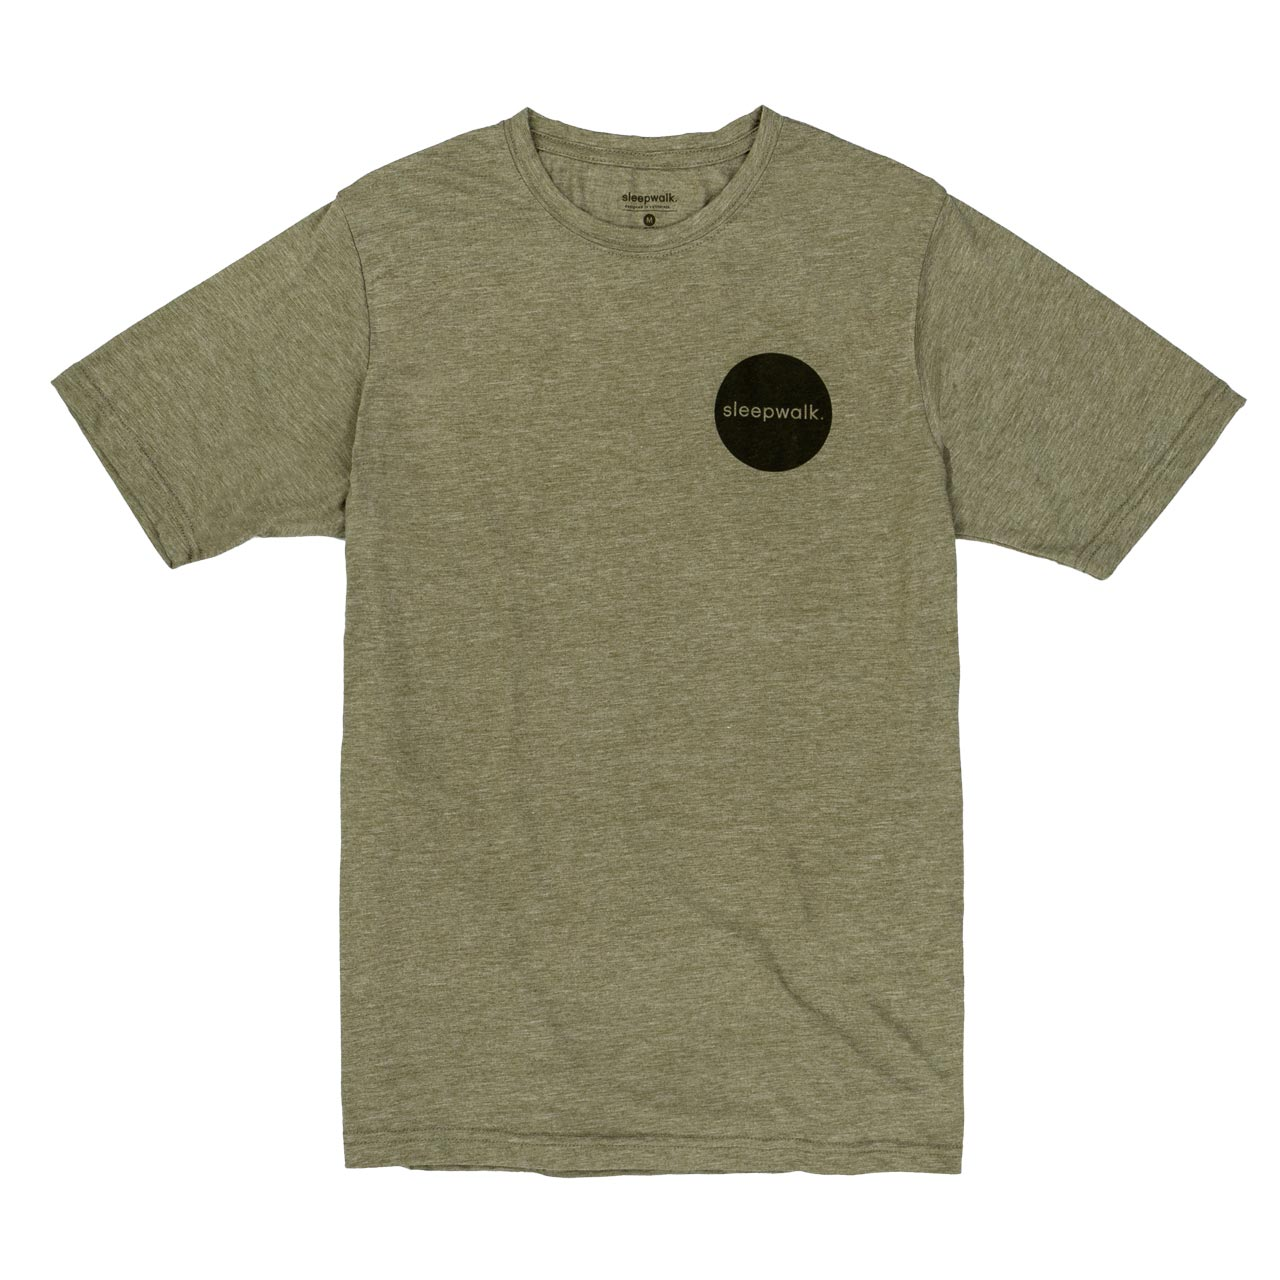 sleepwalk ltd t shirt circle logo army green